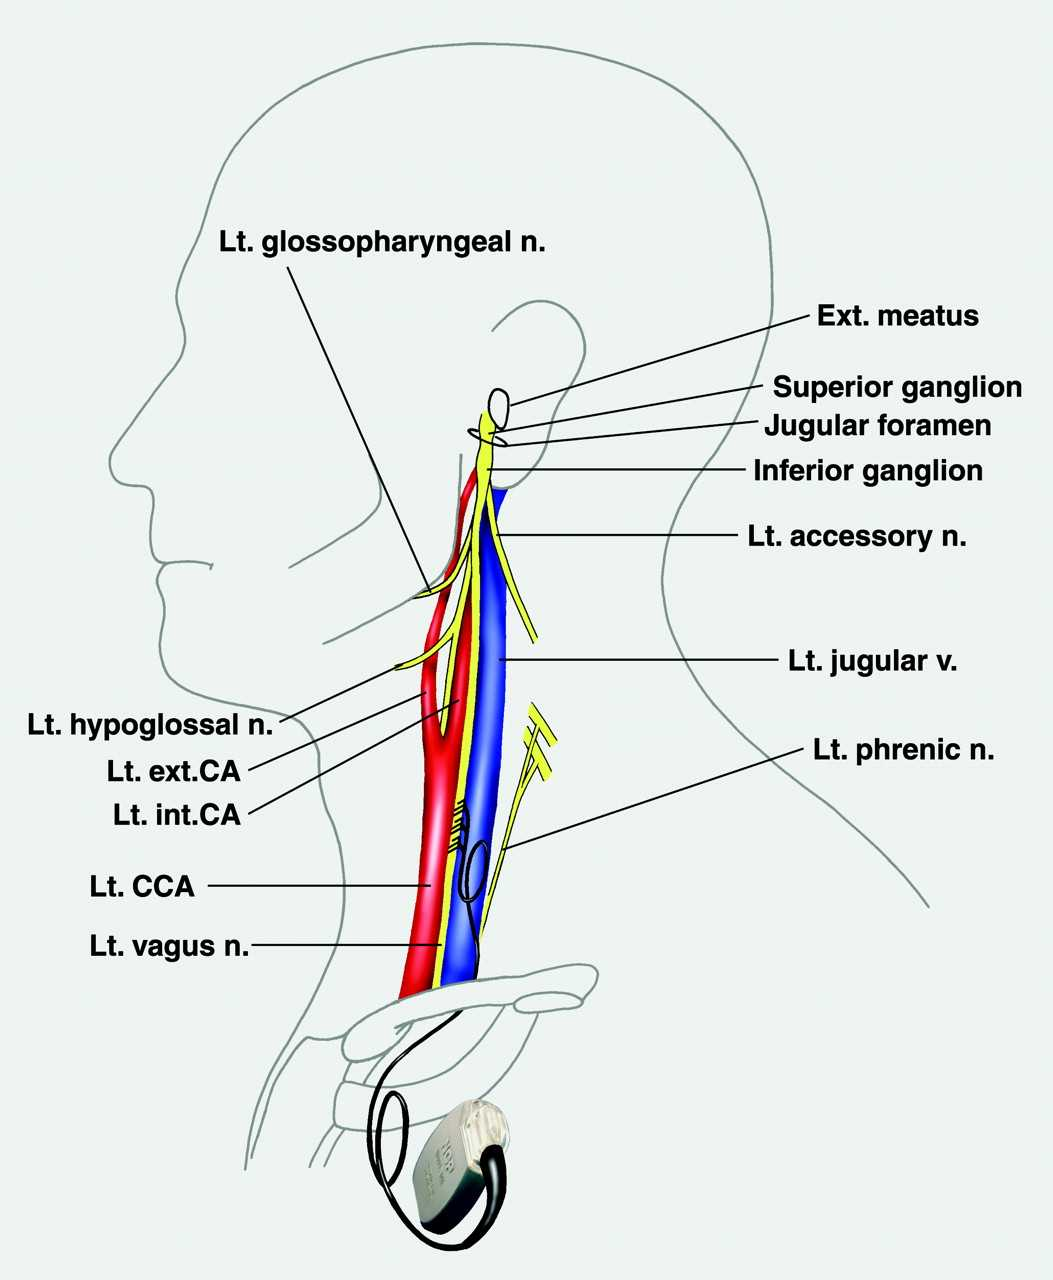 Glossopharybgeal Nerve Anatomy Page 38